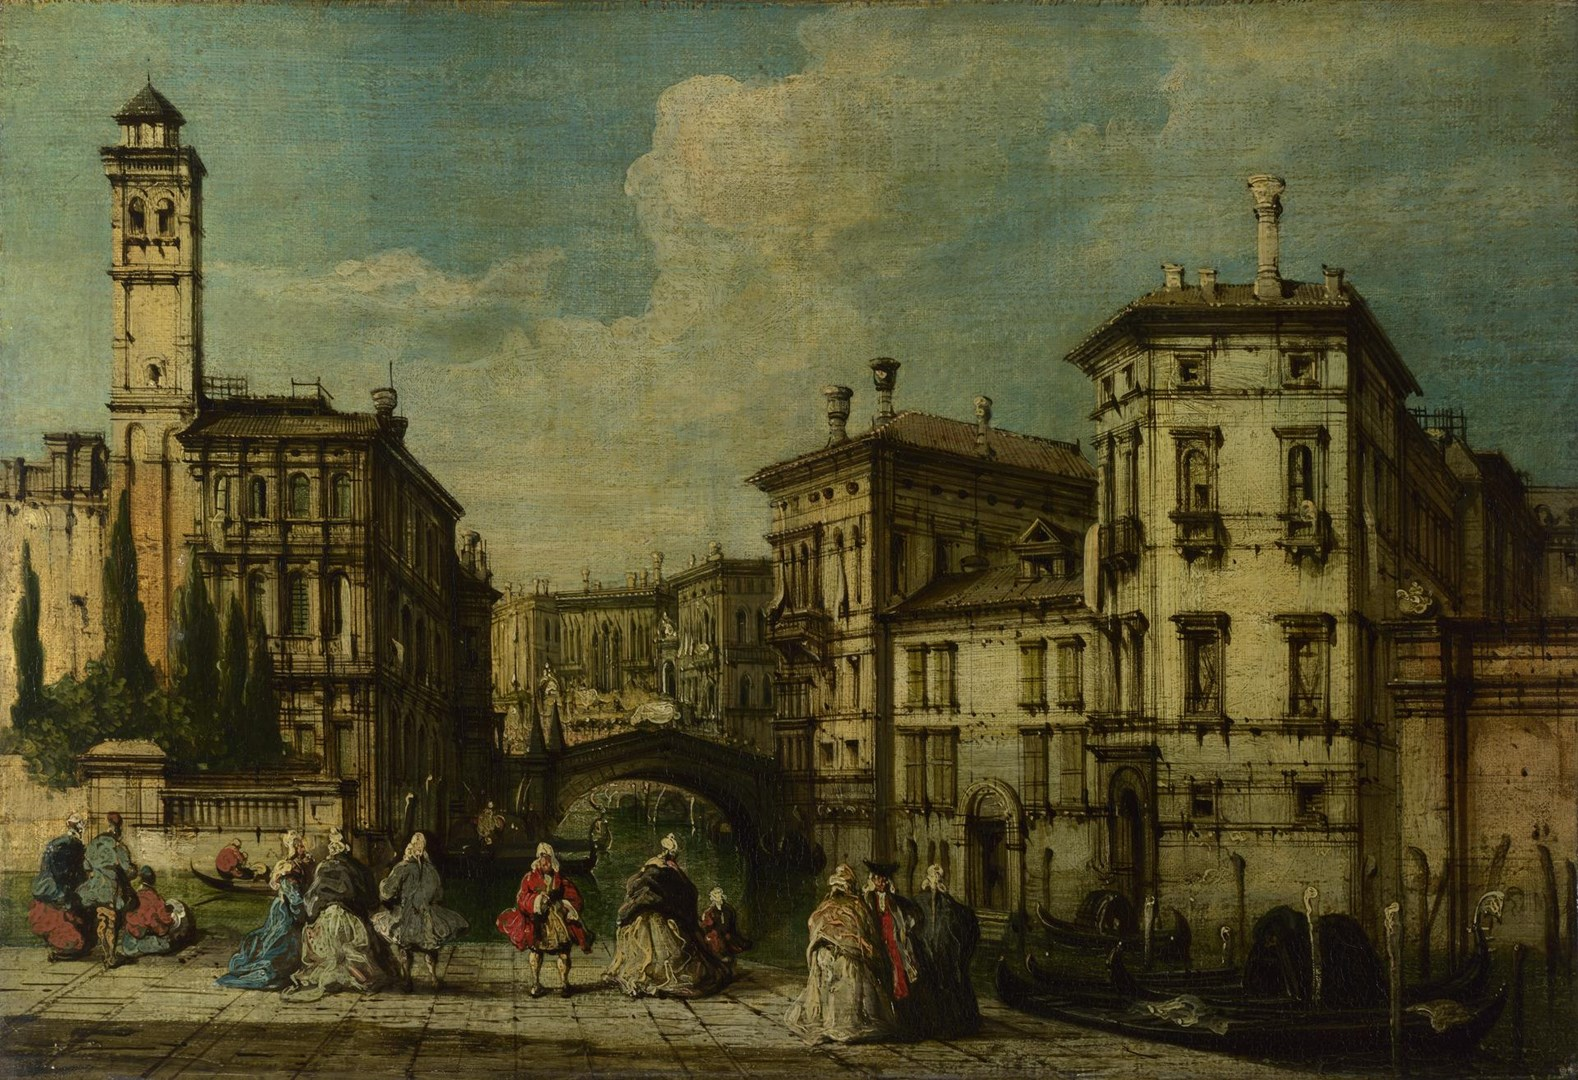 Venice: Entrance to the Cannaregio by Imitator of Francesco Guardi